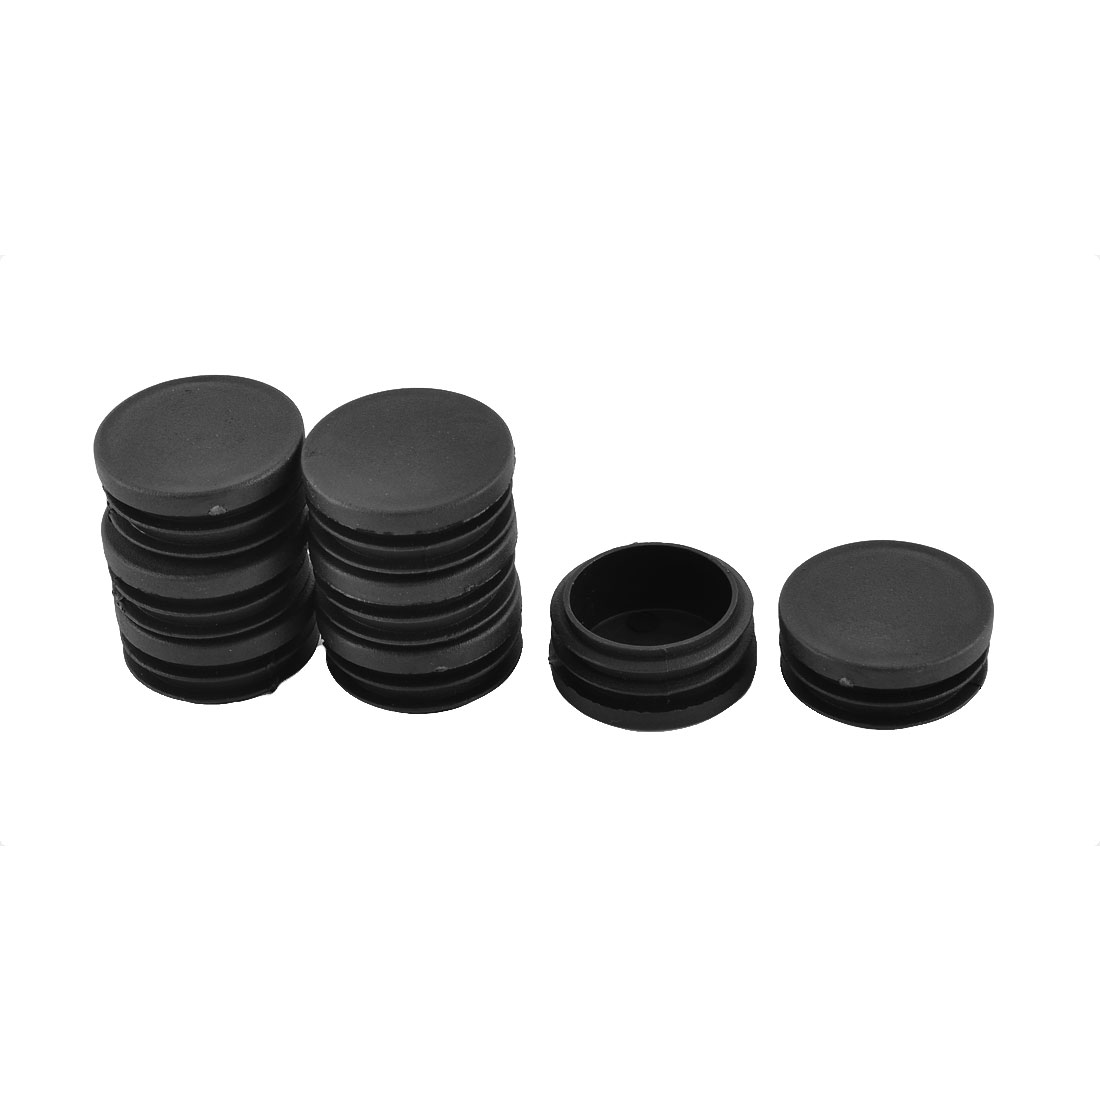 Furniture Leg Plastic Round Tube Insert Cap Cover Protectors Black 40mm Dia 8pcs